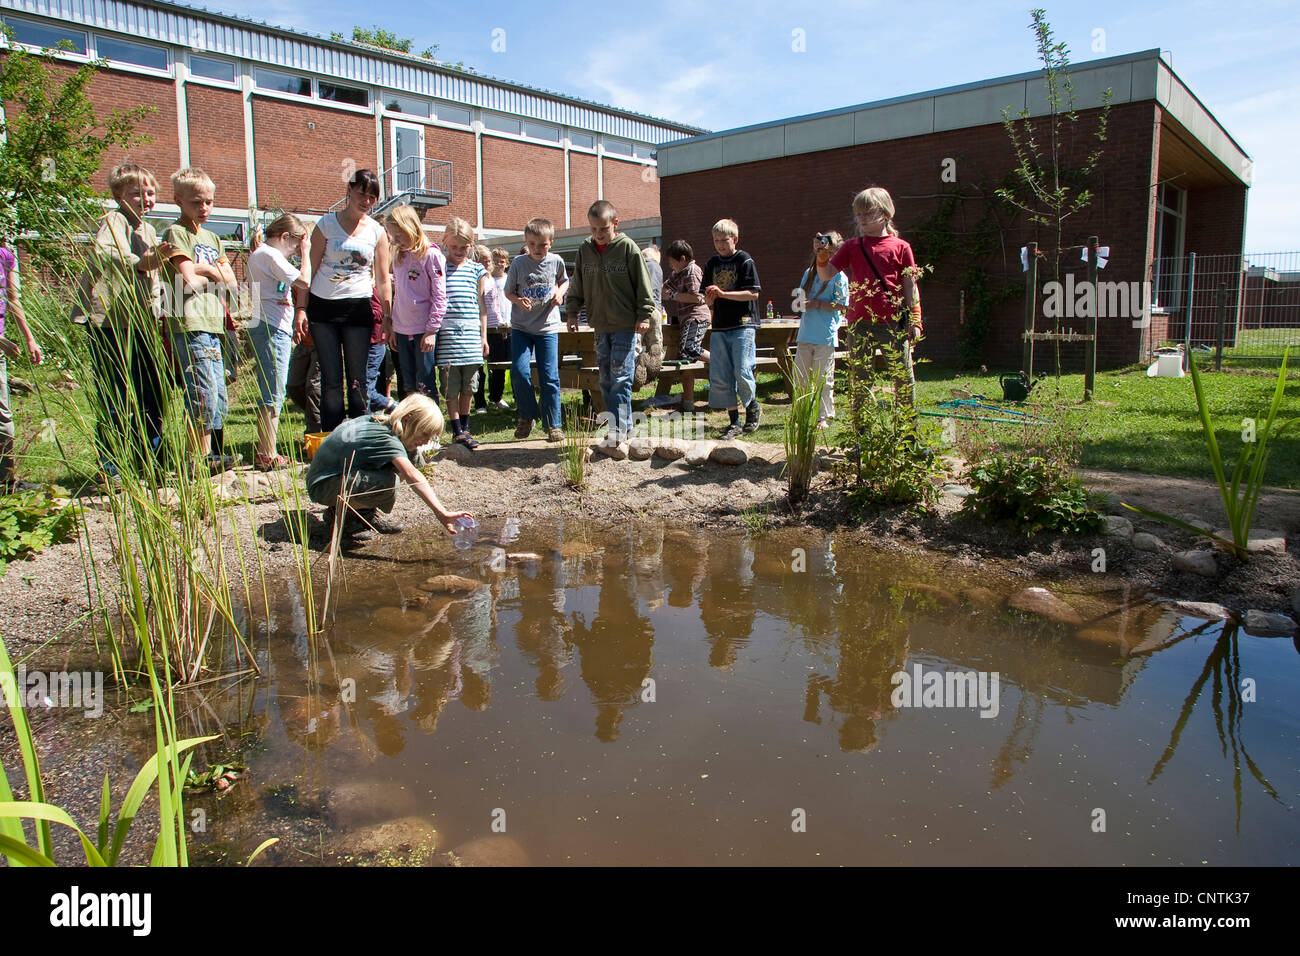 primary school pupils catching animals in the self-built pond in the school garden - Stock Image